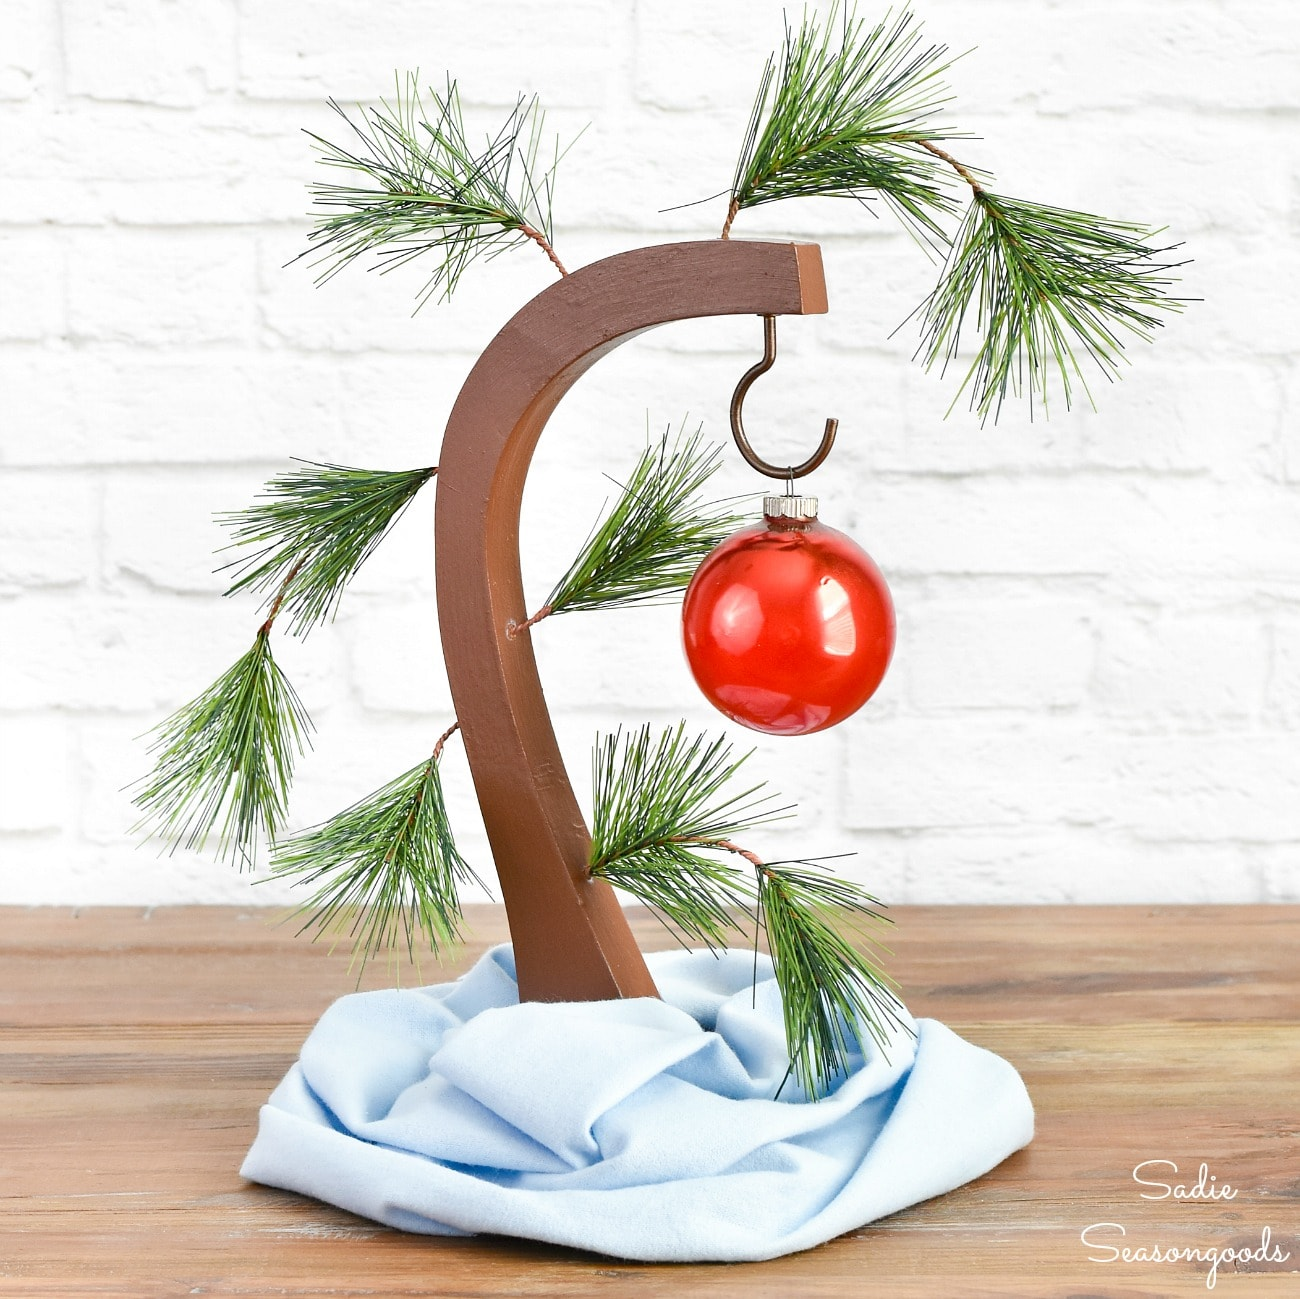 Upcycled Charlie Brown Tree by Sadie Seasongoods, featured in DIY Salvaged Junk Projects 557 on Funky Junk!